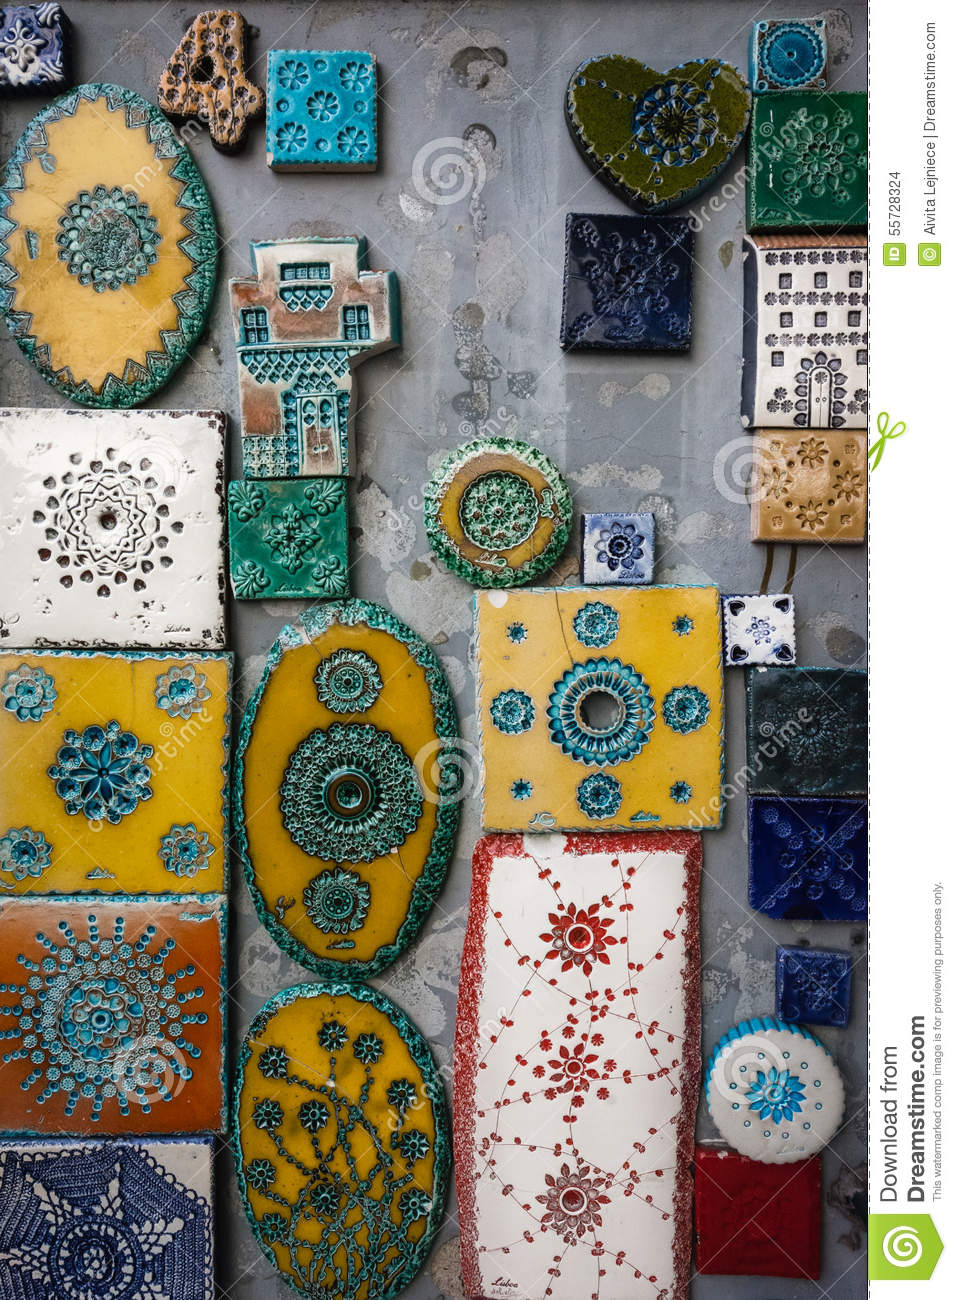 decorative handmade porto portugal tiles wall - Decorative Wall Tiles